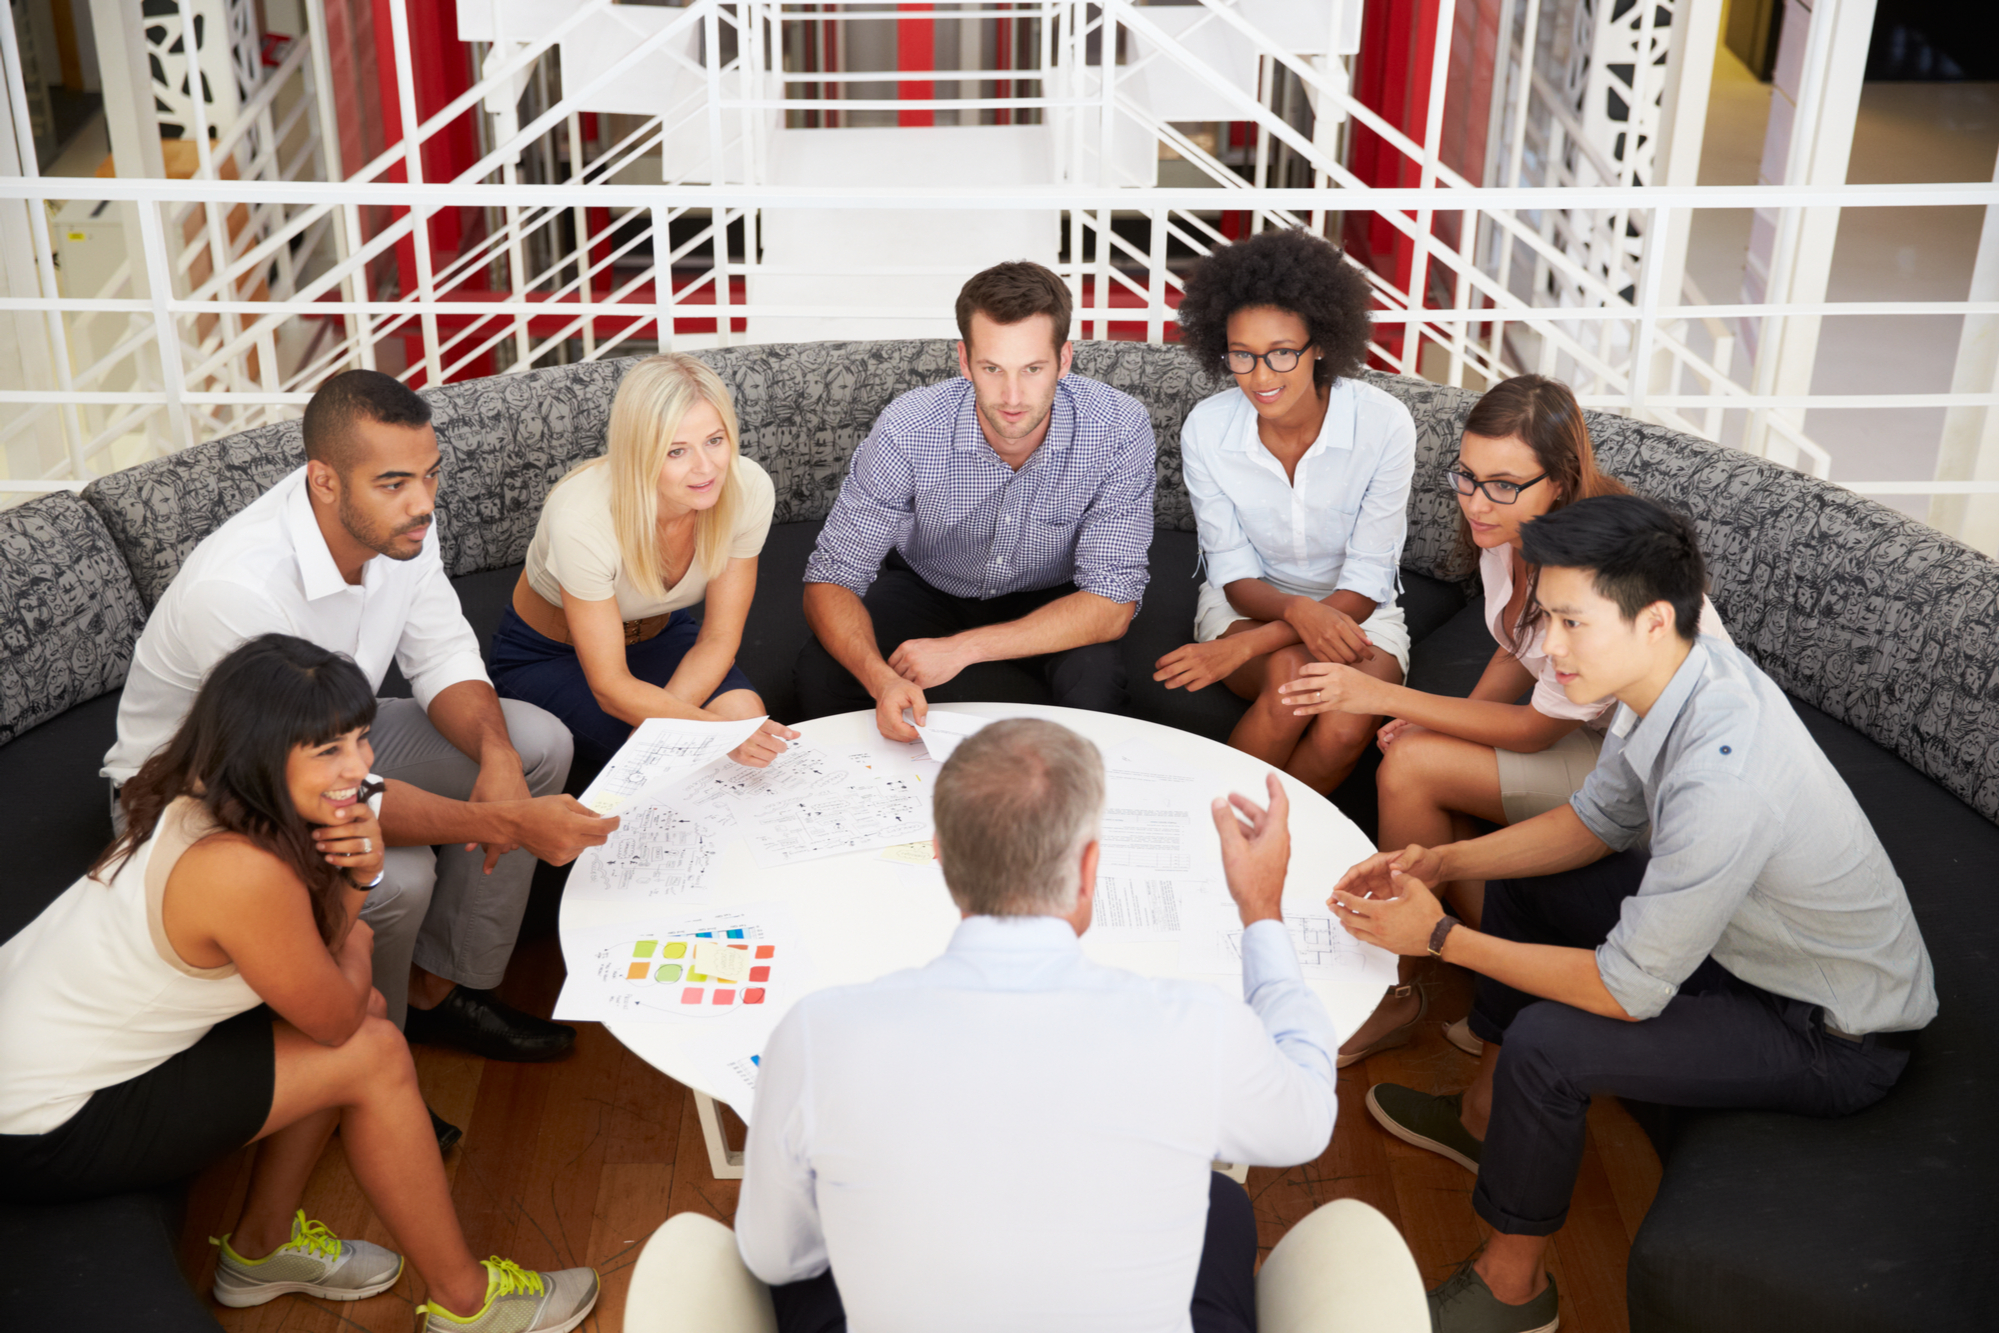 Maintaining company values and culture while growing